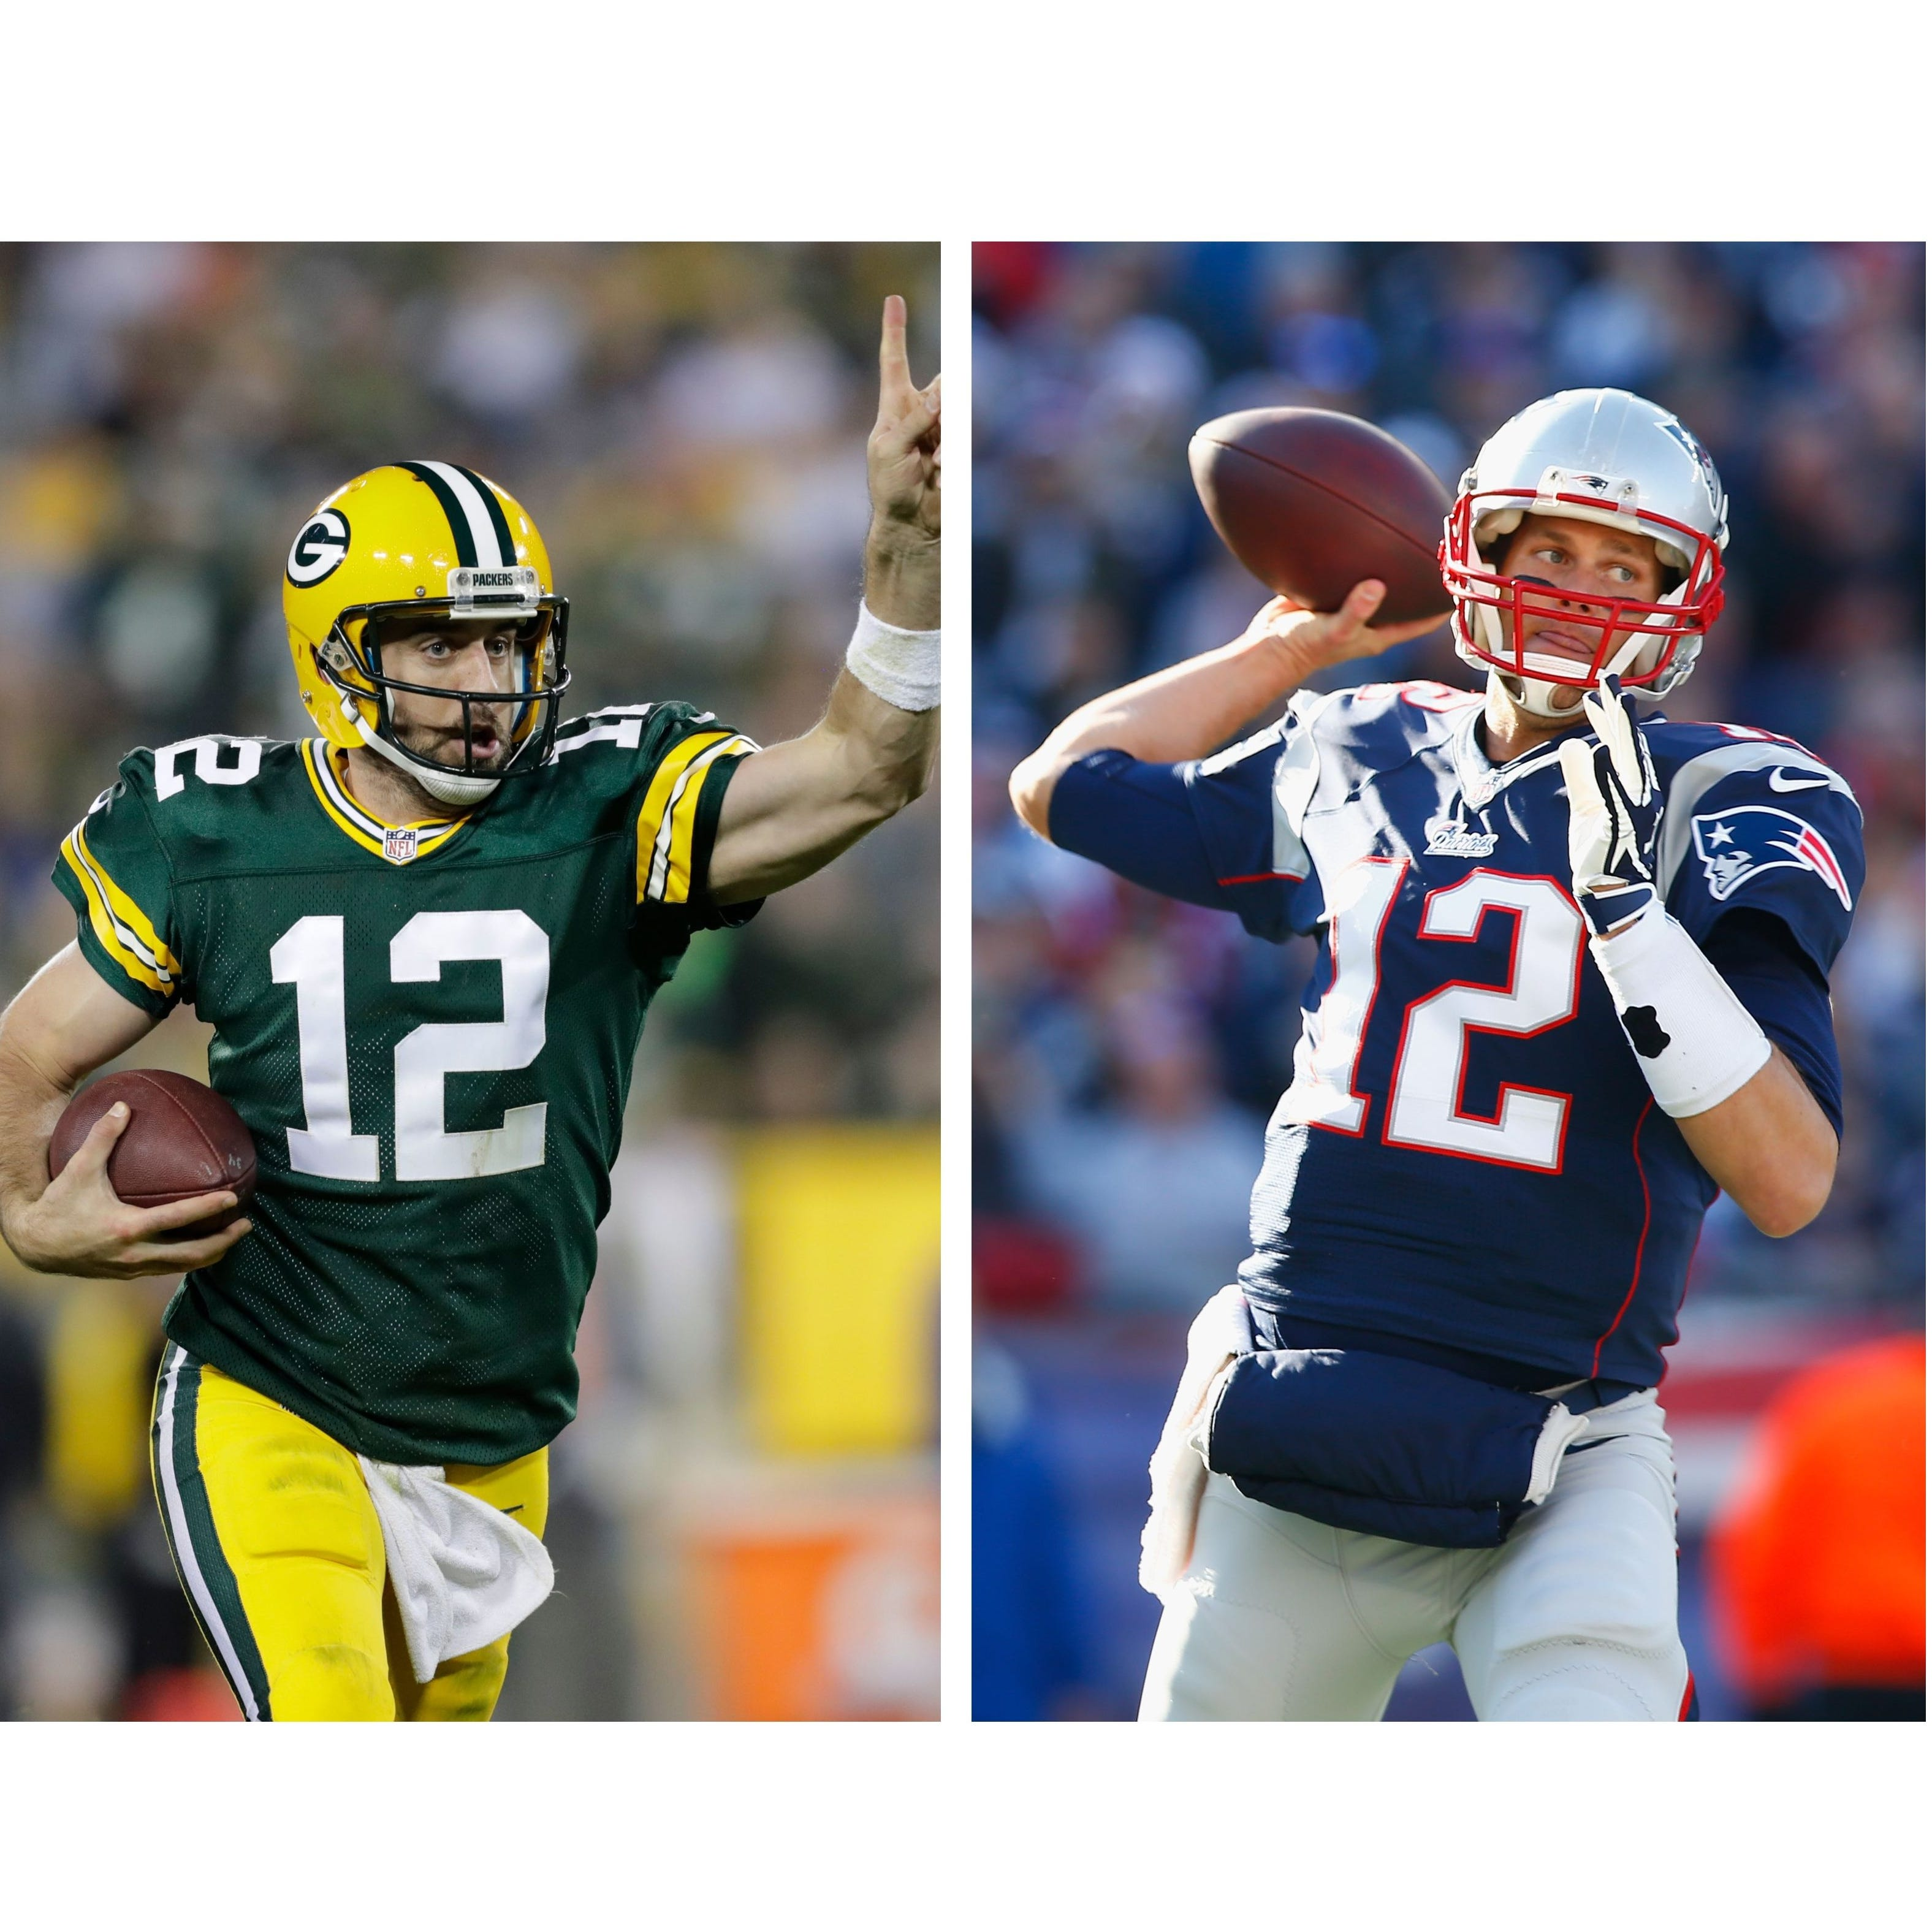 Dougherty: Don't rule out Brady vs. Rodgers rematch in four years